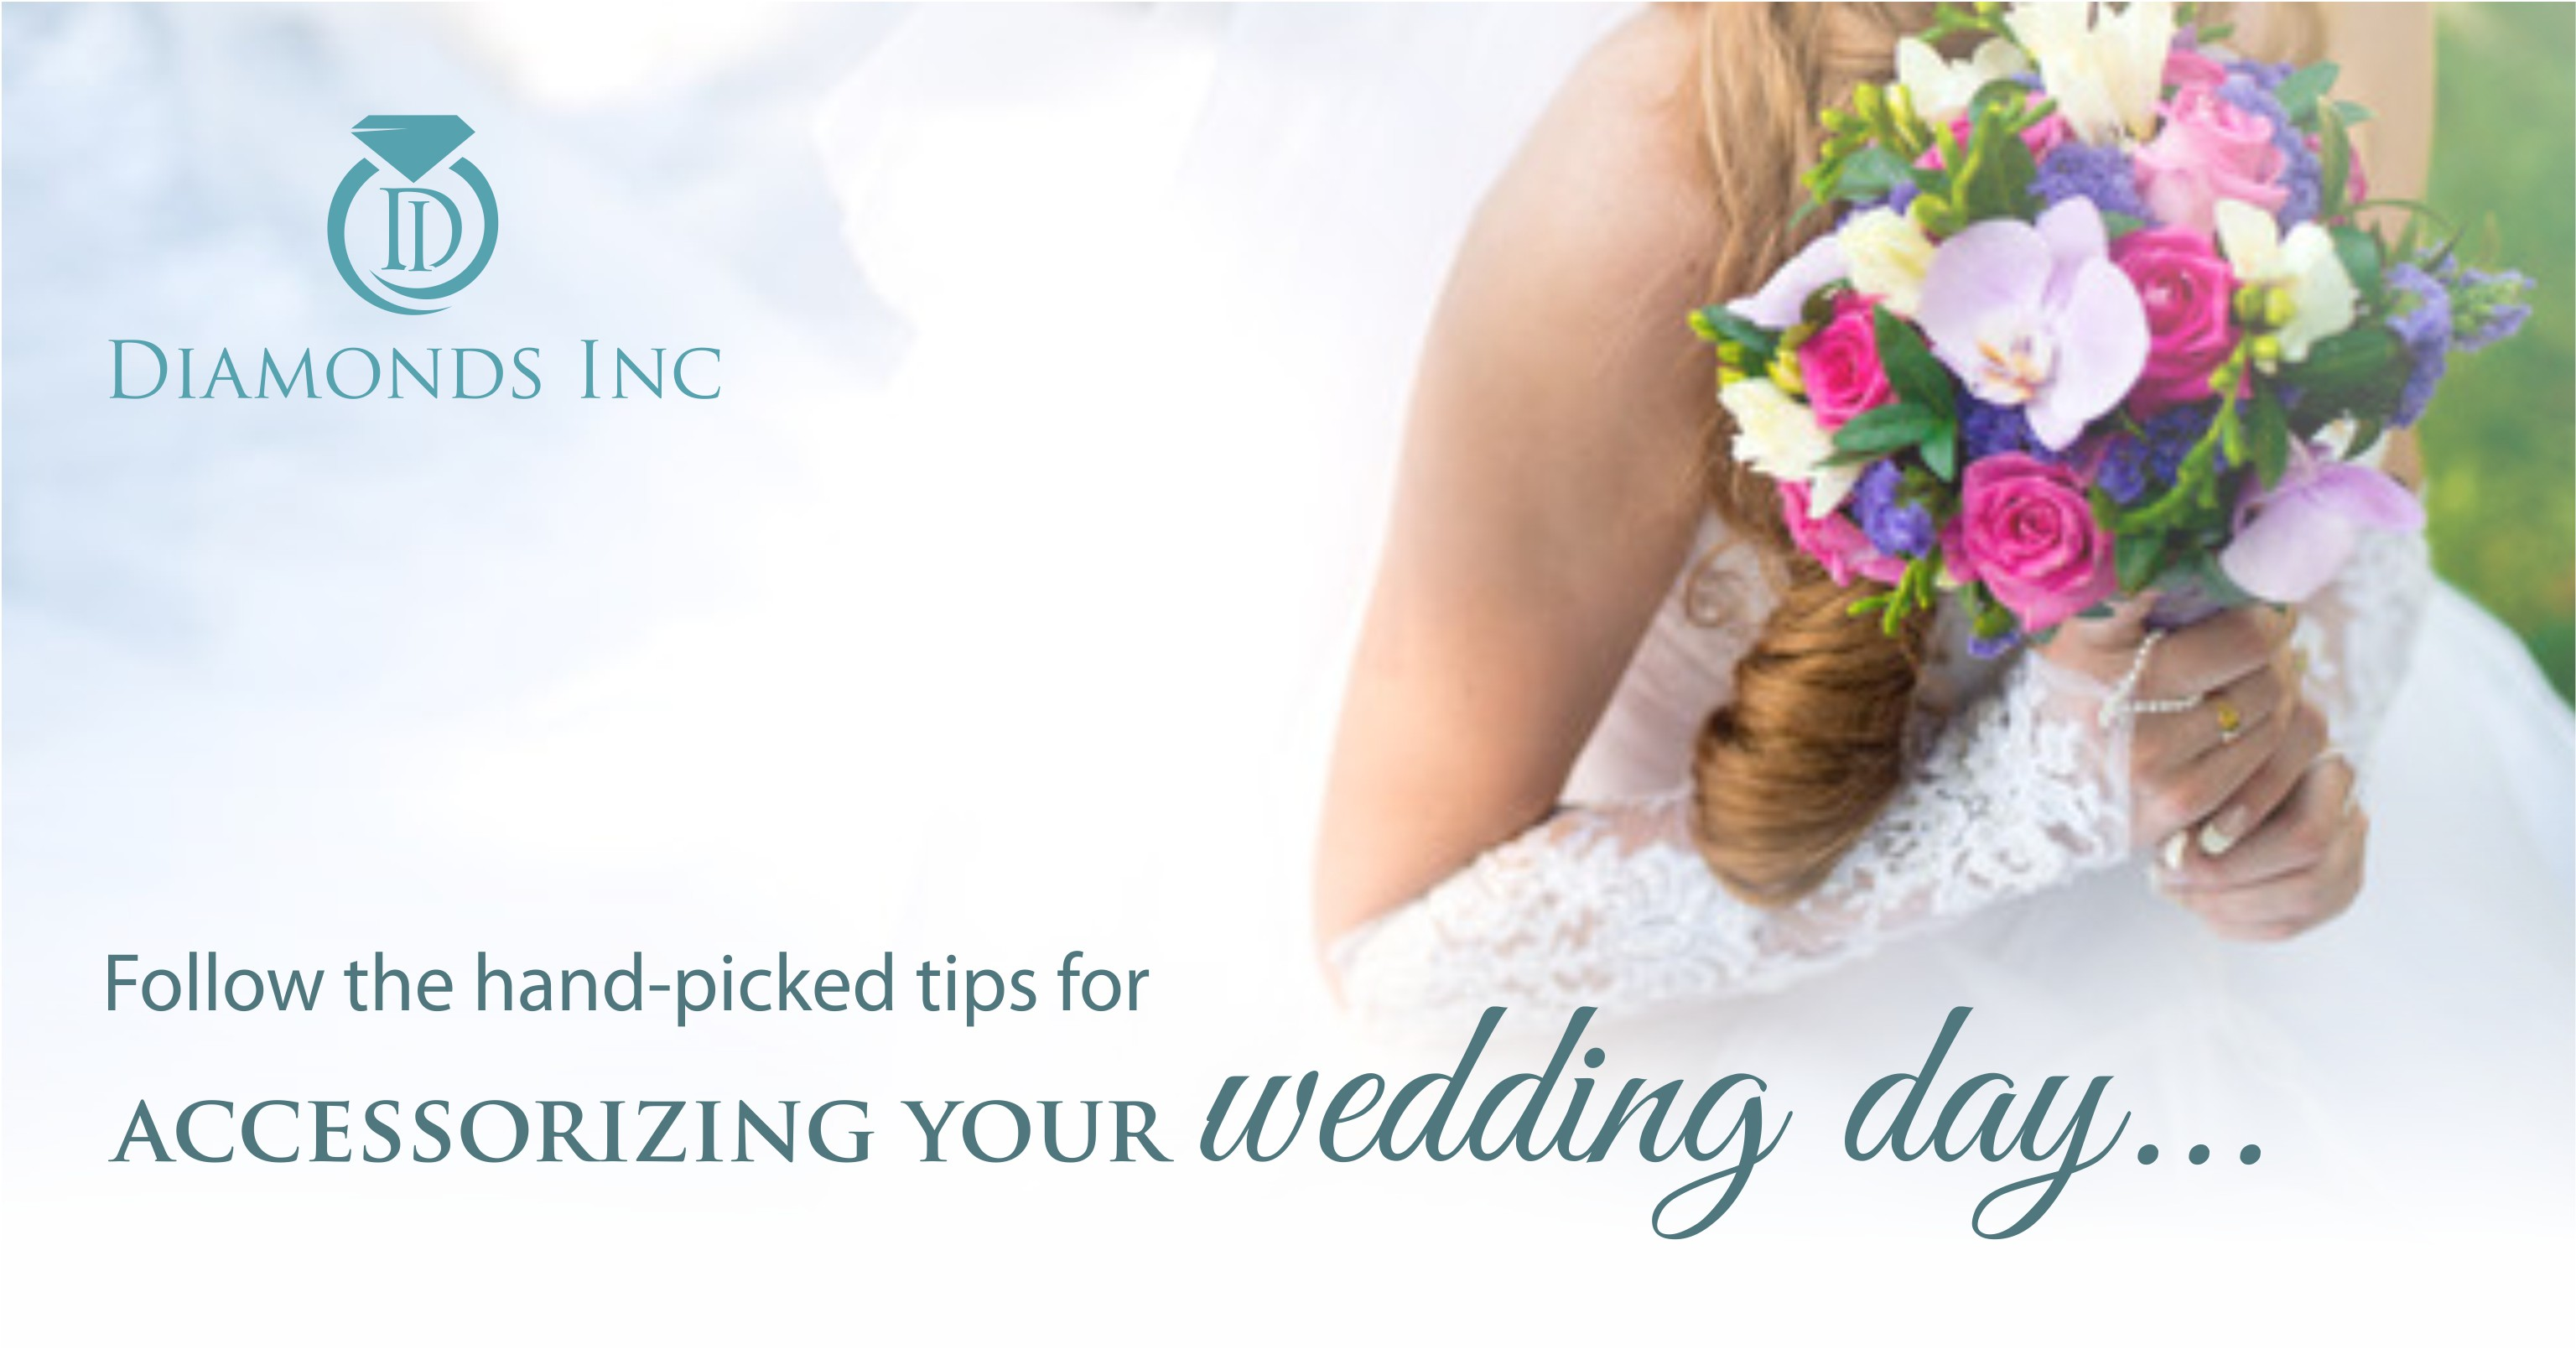 <h1>Follow the hand-picked tips for accessorizing your wedding day</h1>